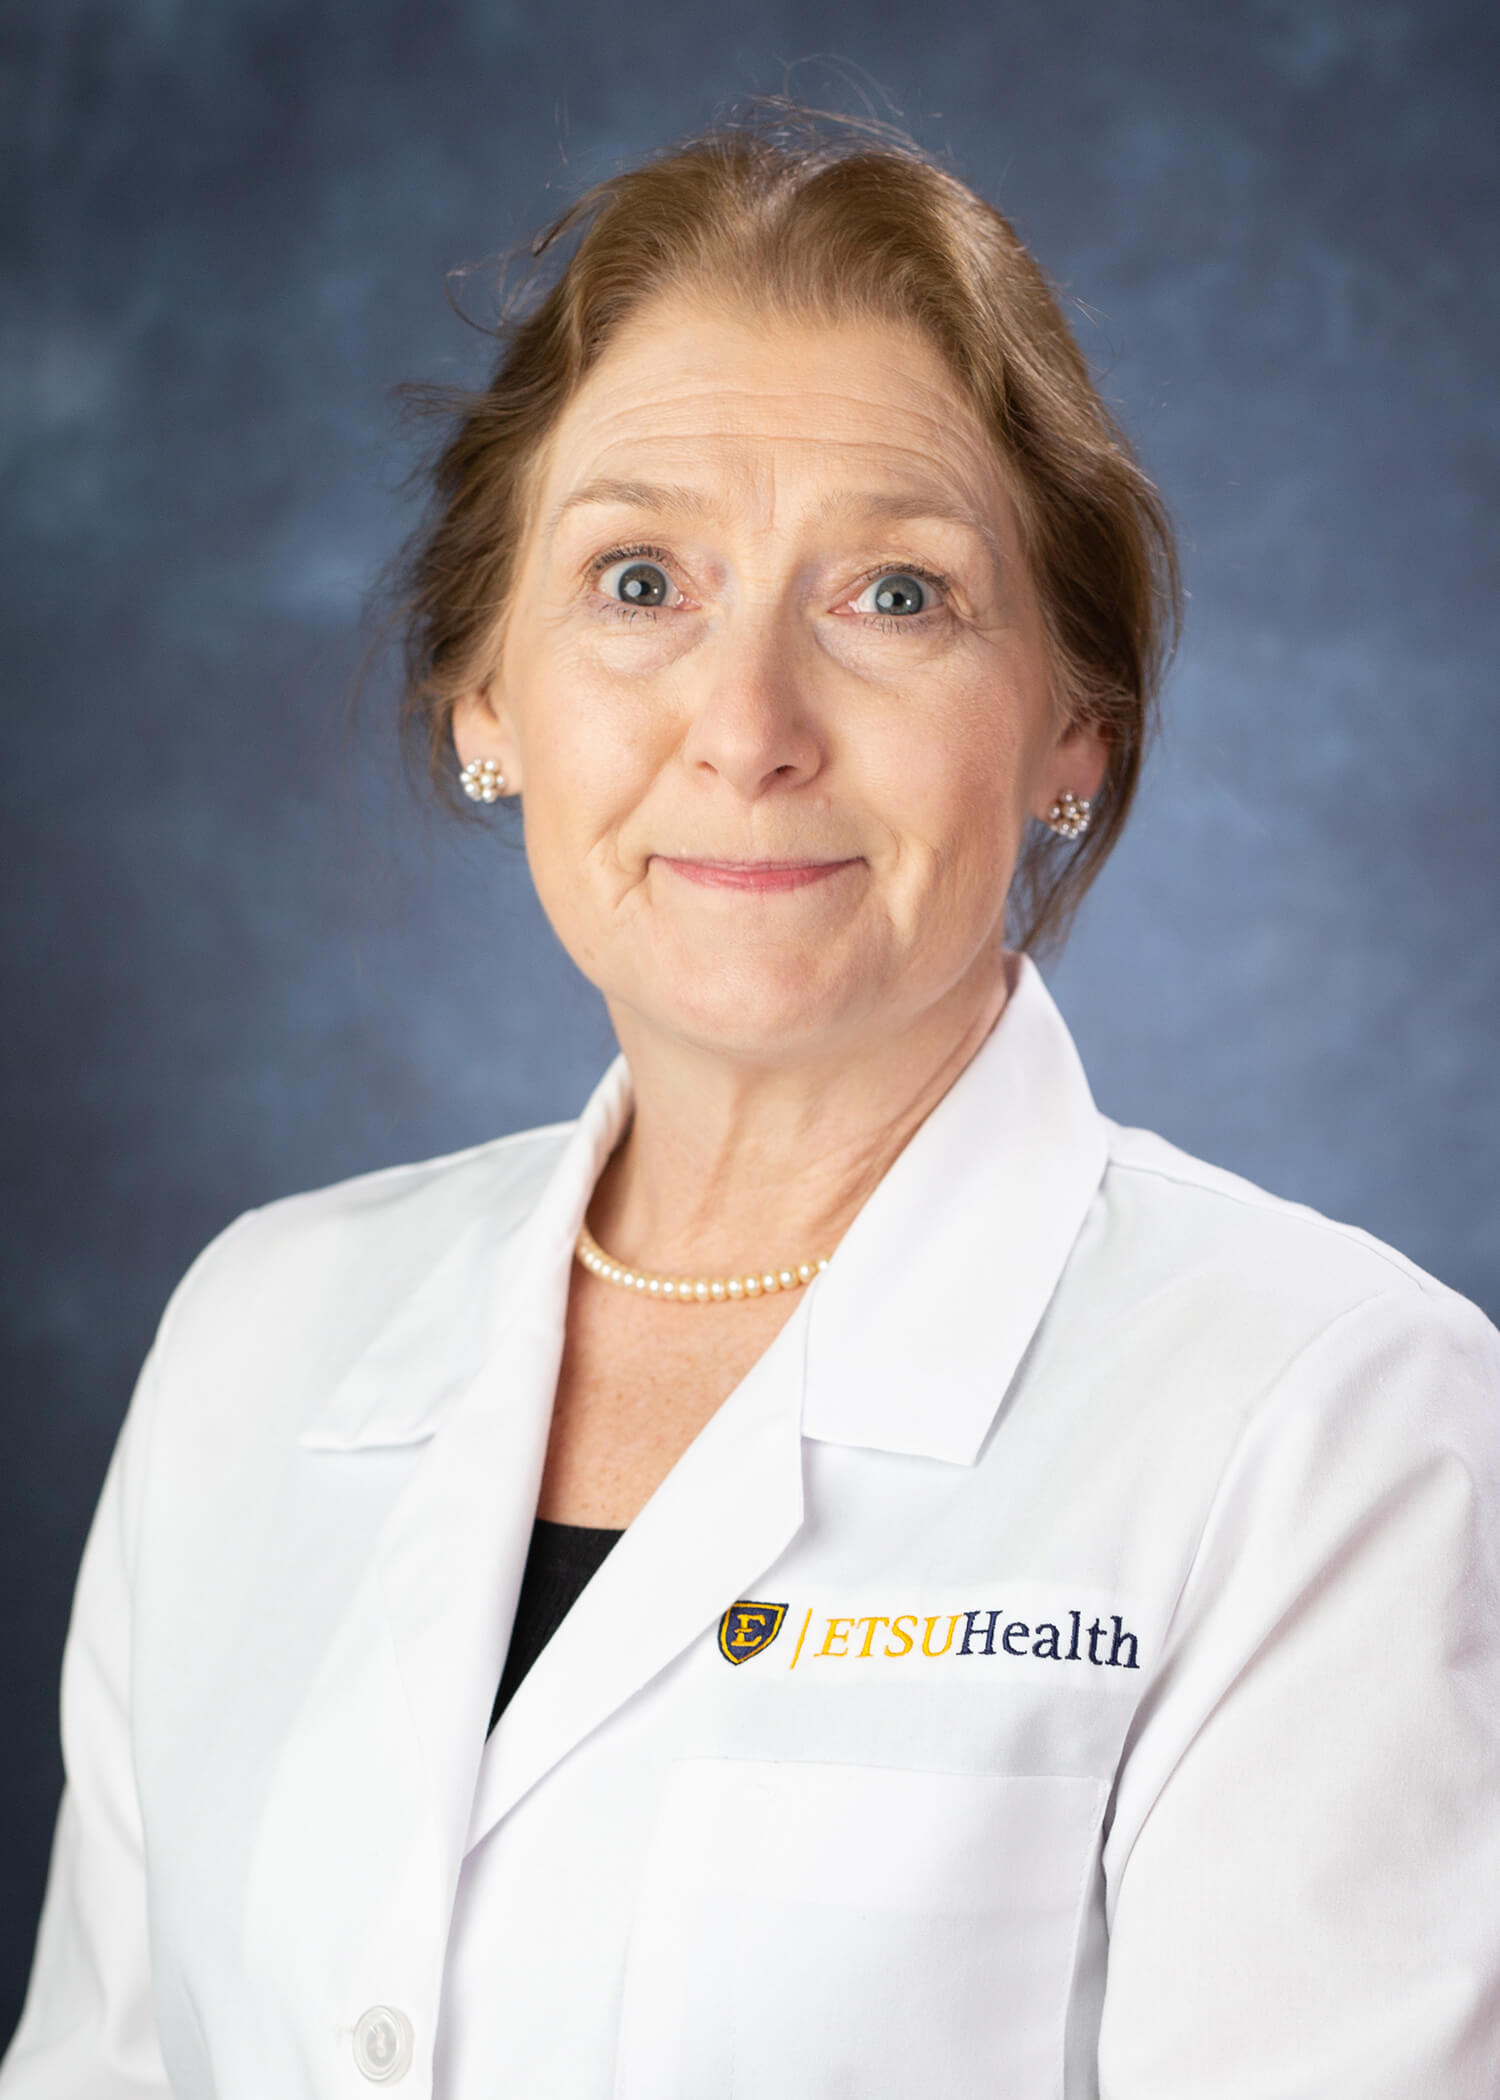 Photo of Diana Nunley-Gorman, M.D.